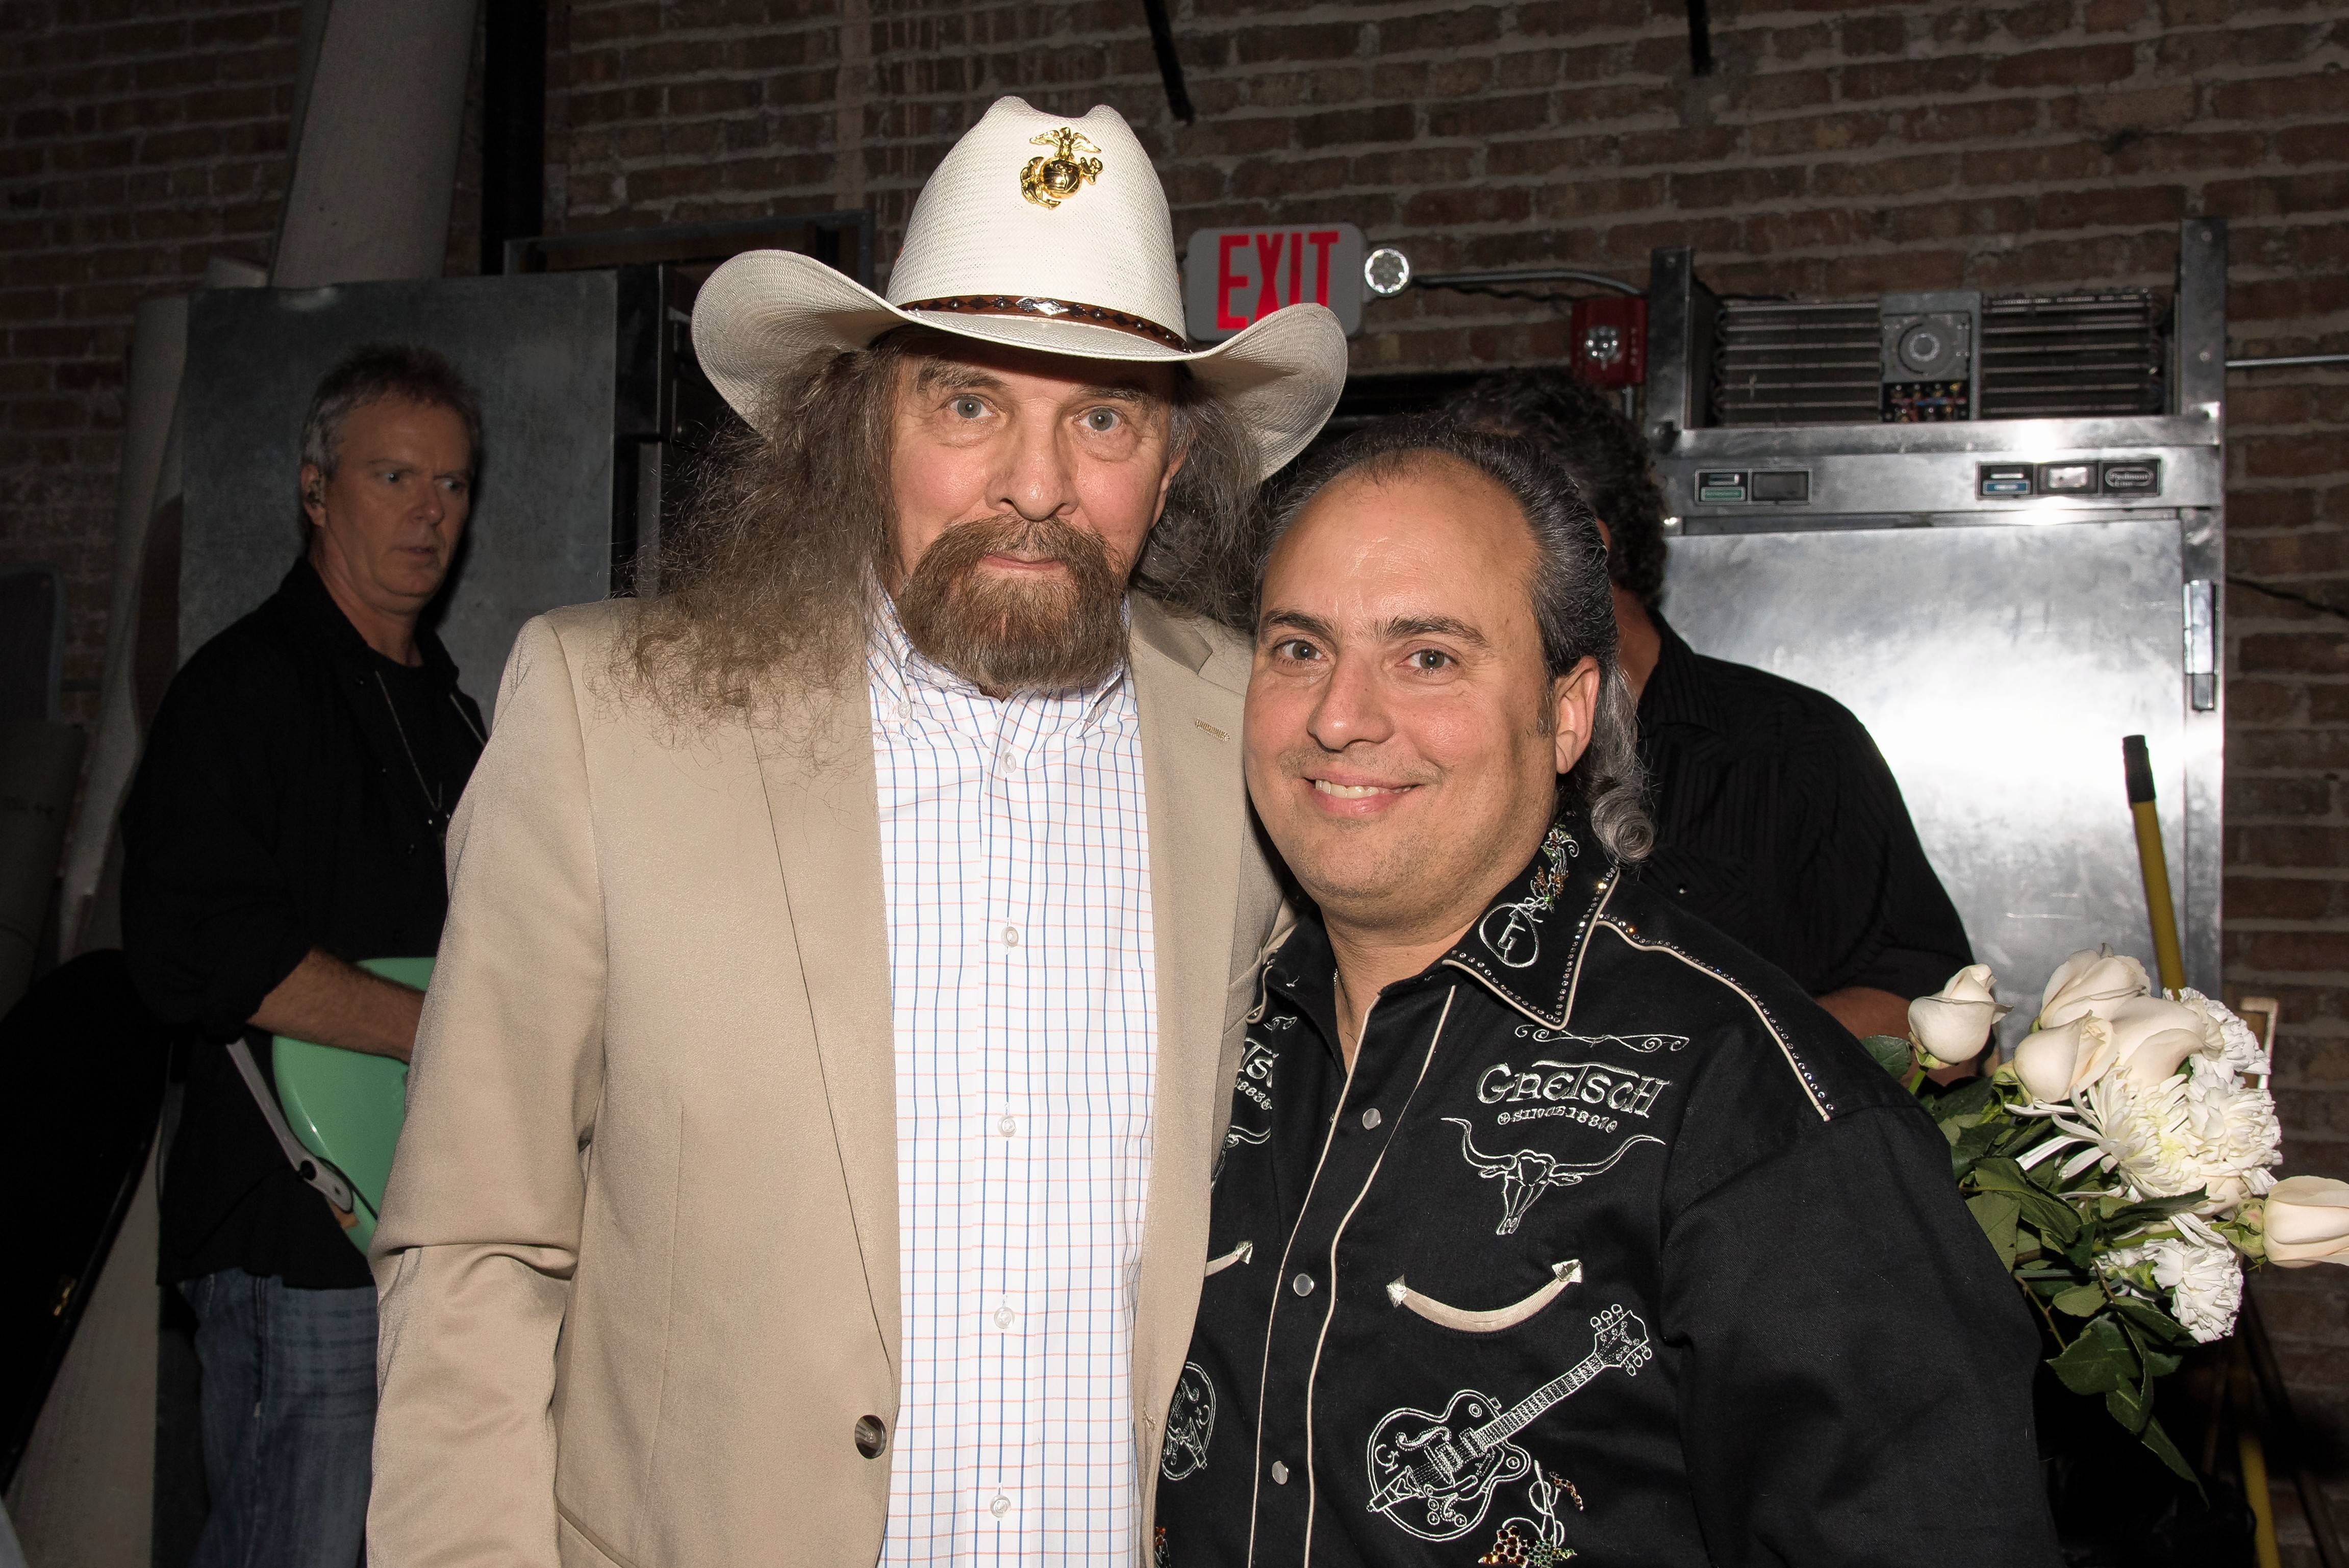 Drummer Artimus Pyle and Ron Onesti, right, recently commemorated the 40th anniversary of the plane crash that took the lives of three members of the Southern rock band Lynyrd Skynyrd. Pyle is one of 20 survivors of that crash.